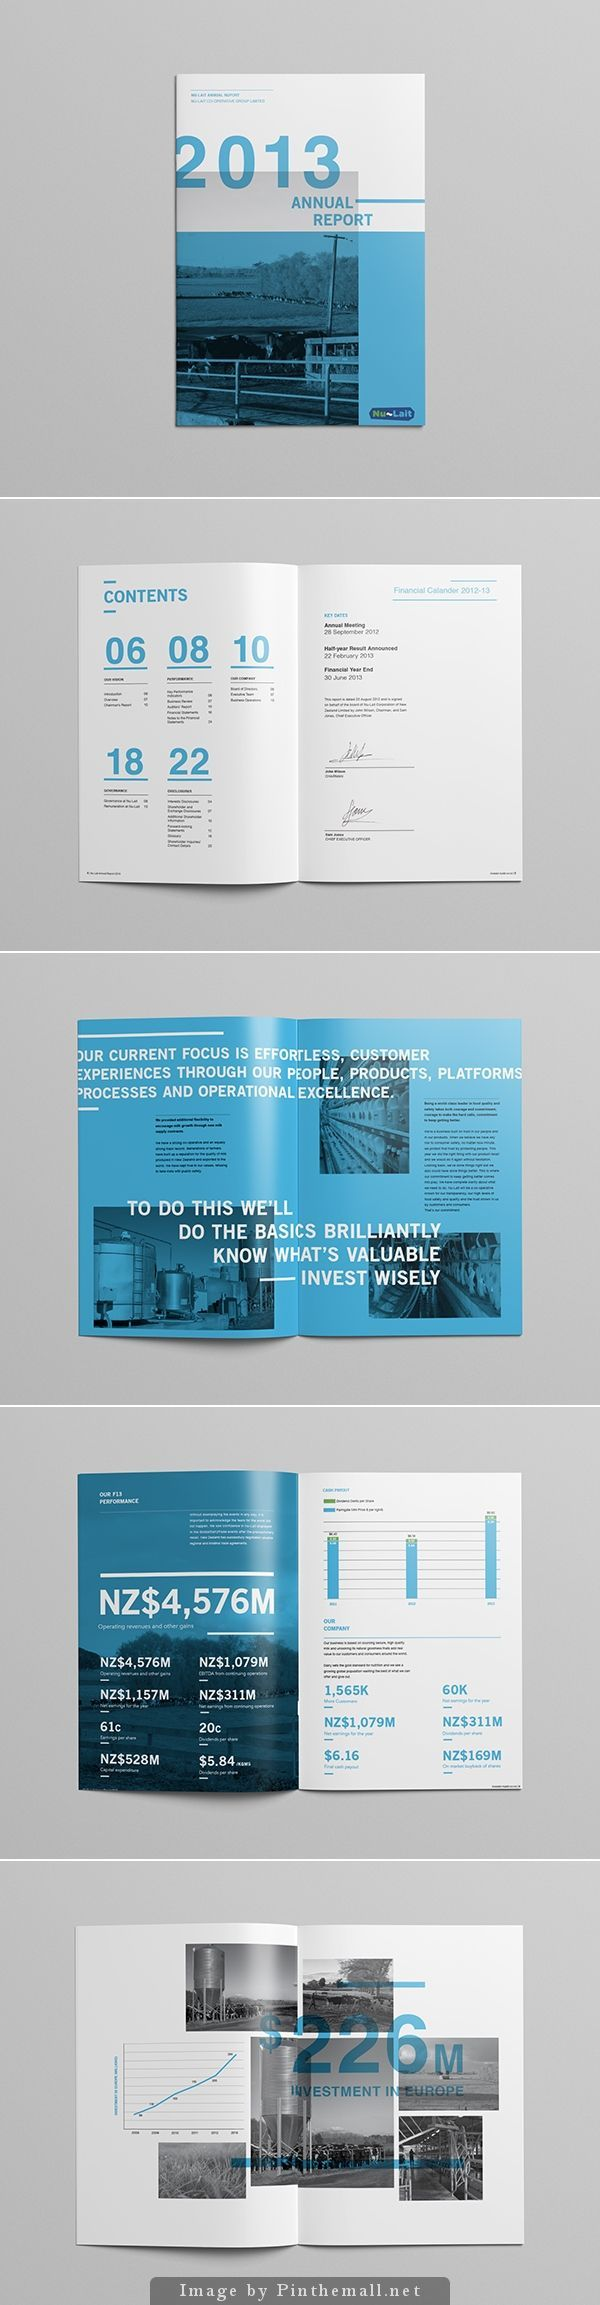 Annual Report By Minhye Kim Via Behance  Annual Report